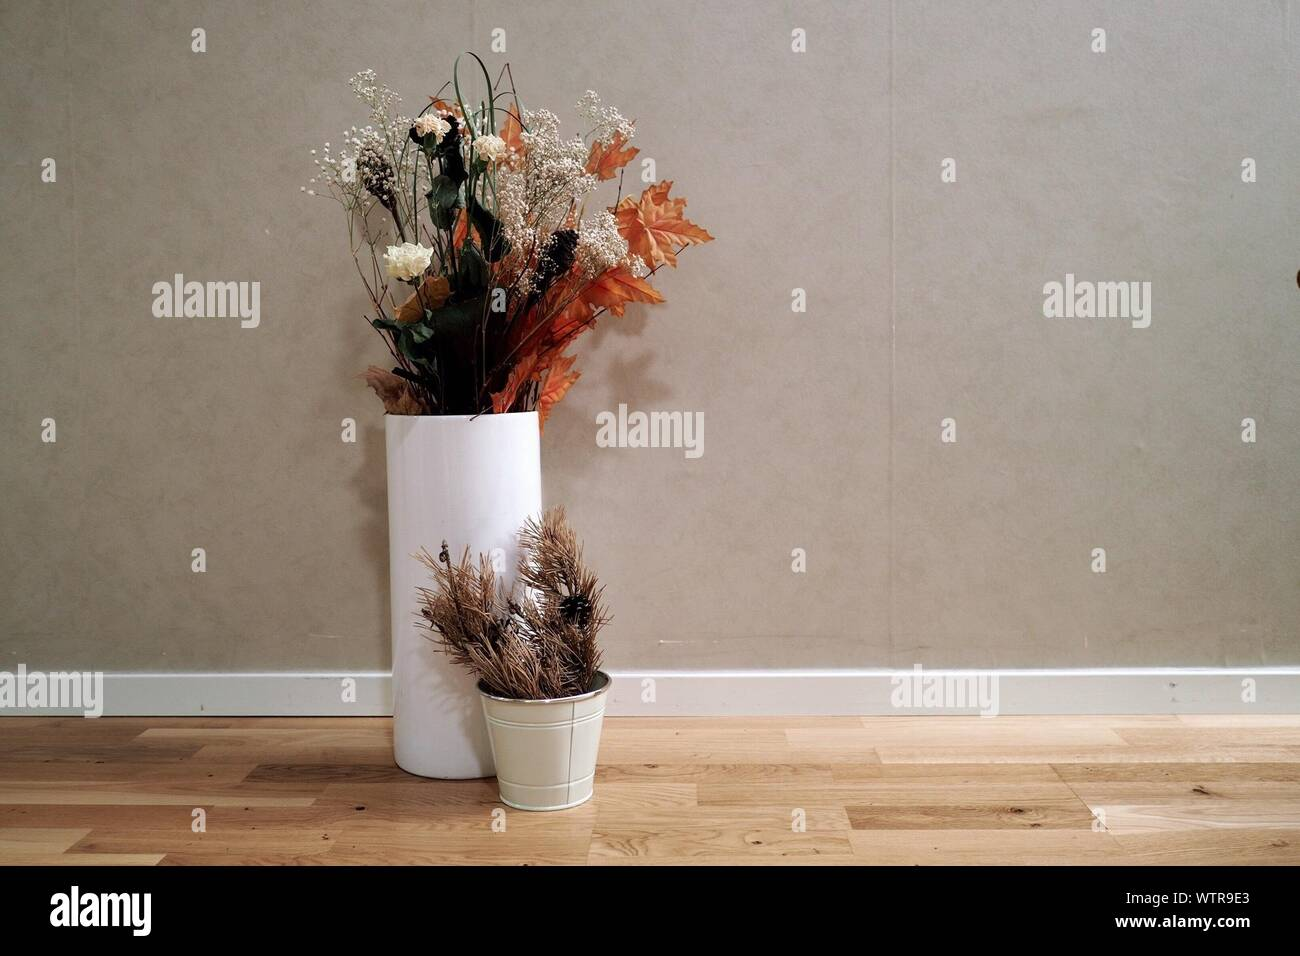 Artificial Flowers In Vase On Floor Against Wall Stock Photo Alamy